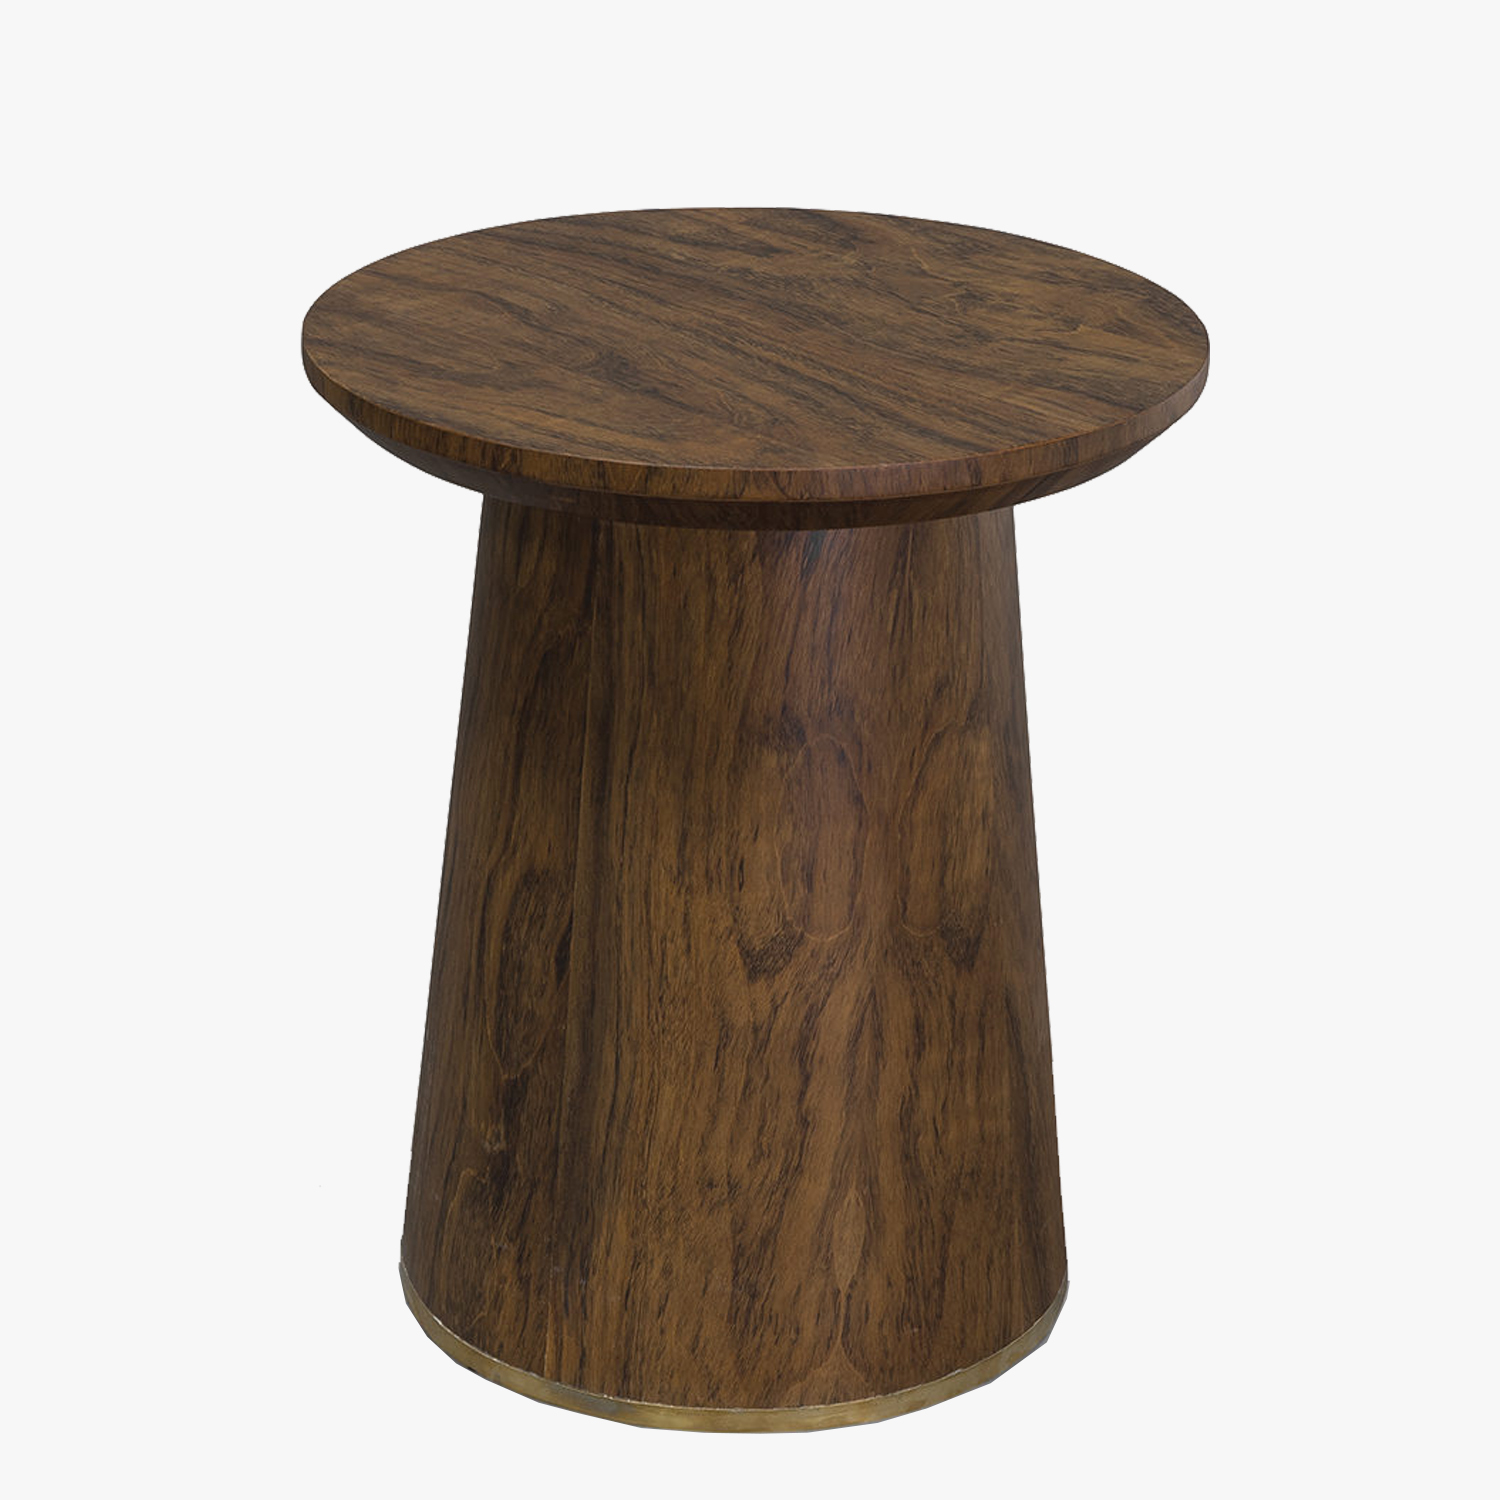 jonas veneer round side table palecek tables dear keaton small accent under backyard furniture lamps for bedroom half circle console dark rustic coffee dining room legs wood